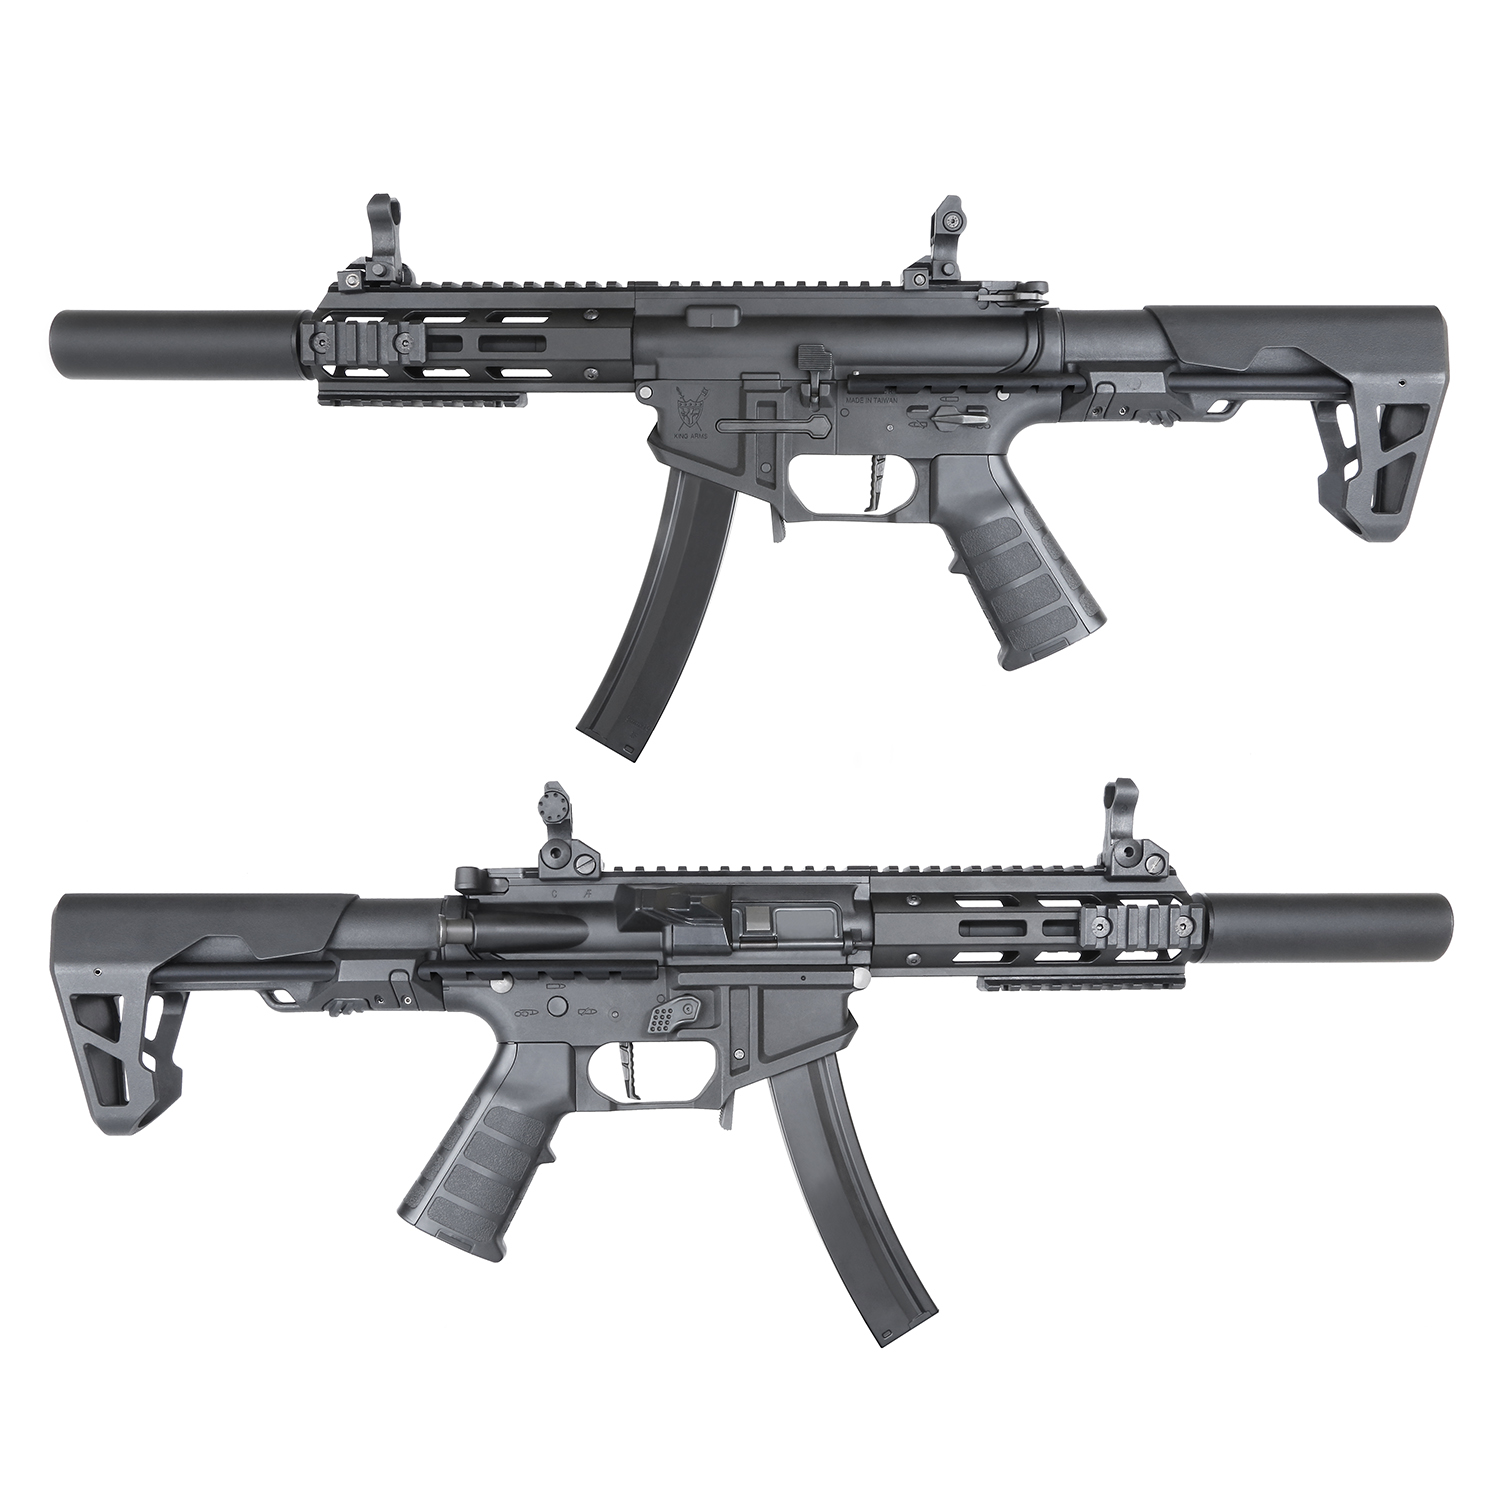 King Arms PDW 9mm SBR SD AEG Rifle - Black